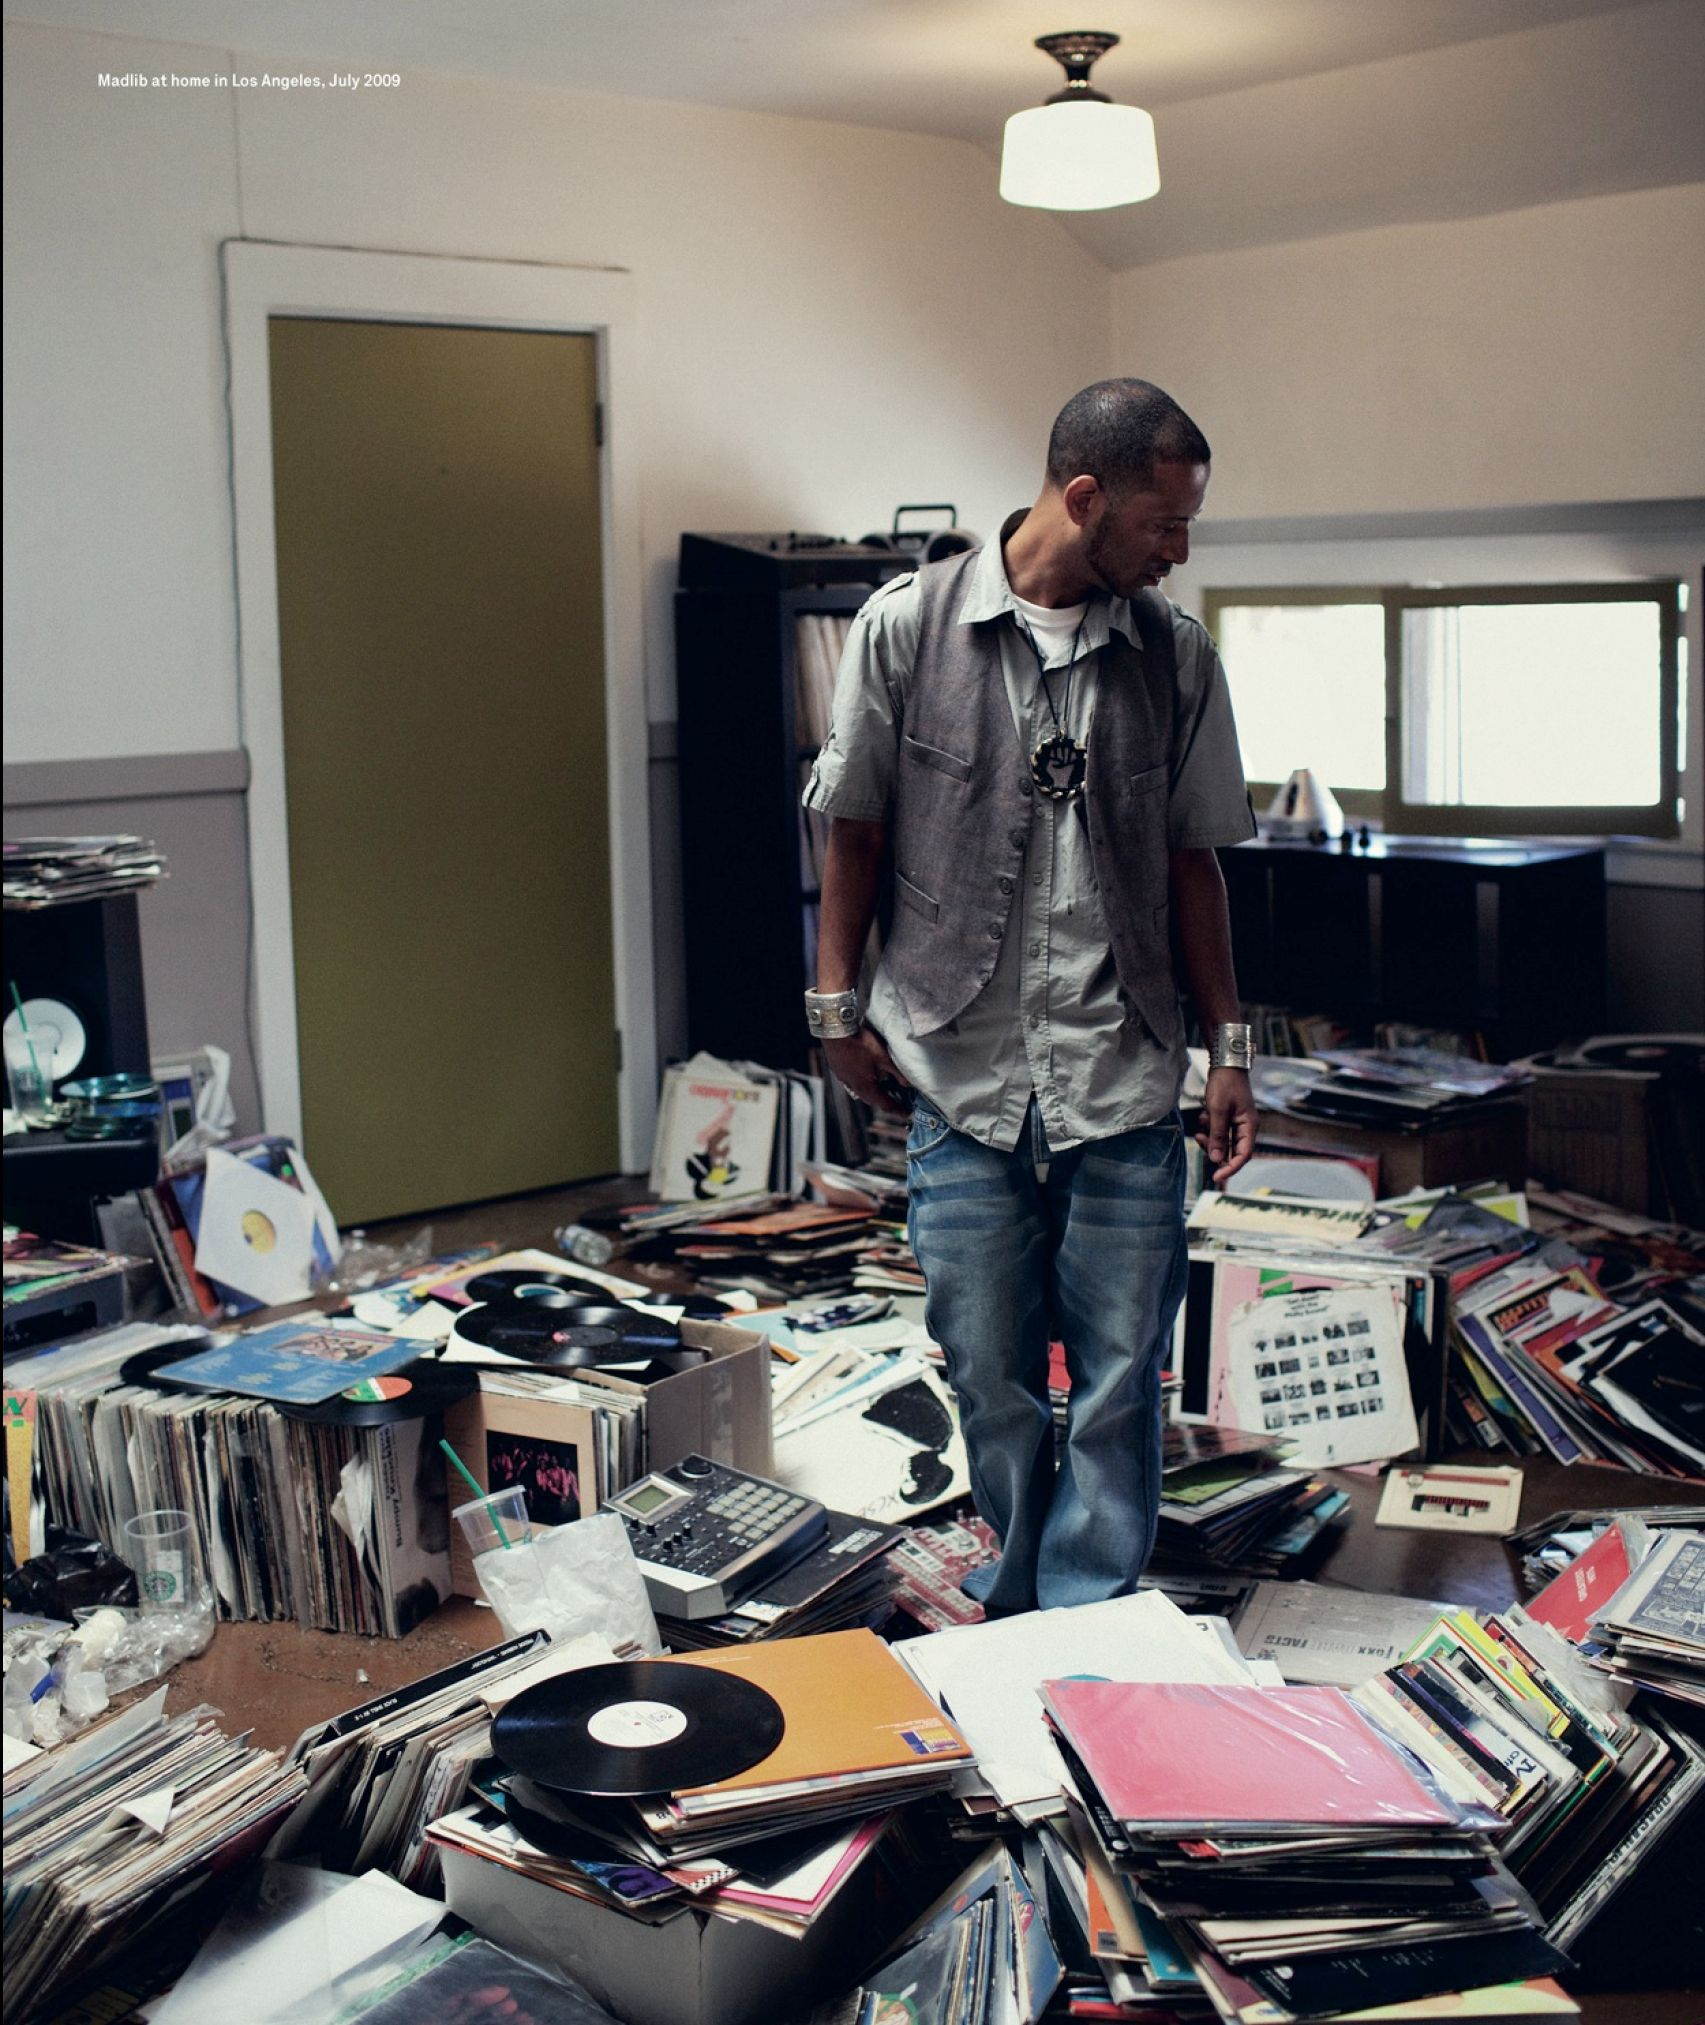 Madlib with his vinyl and MPC 4000 in the middle